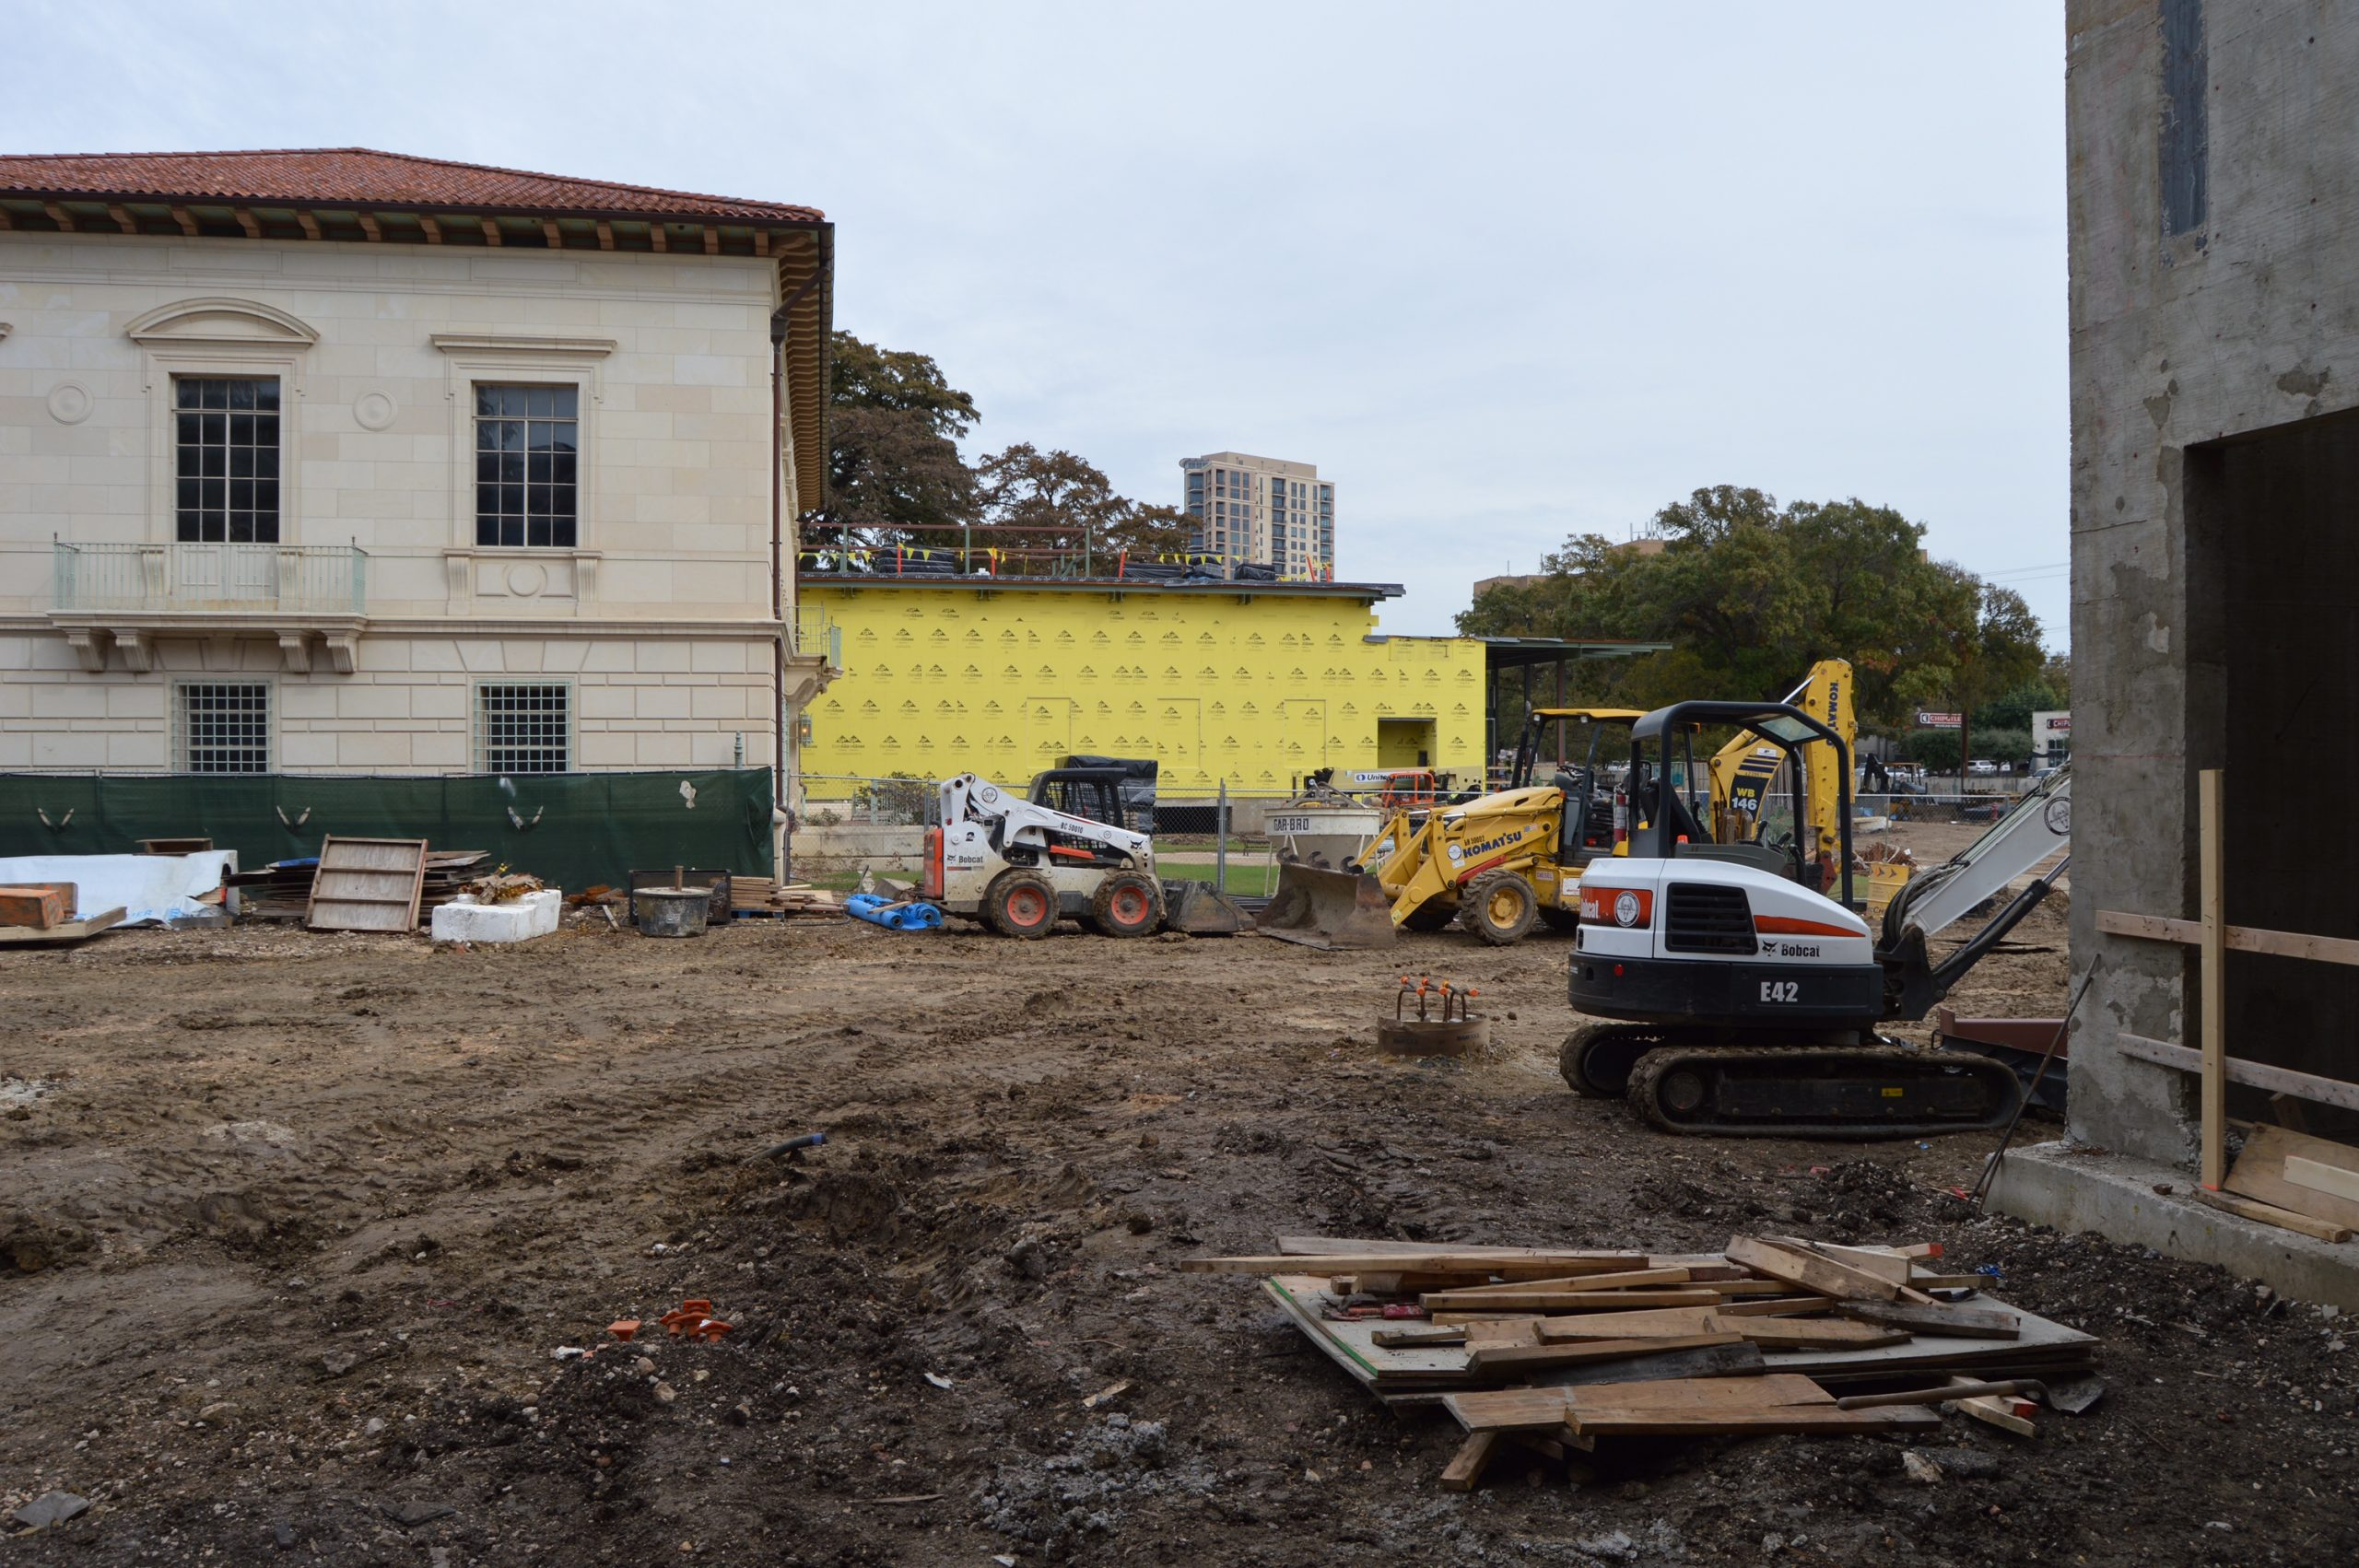 The yellow building will house the Mays Family Center, slated to open in 2016. The center will soon house the Naylor Family Dinosaur Gallery. Photo by Lea Thompson.